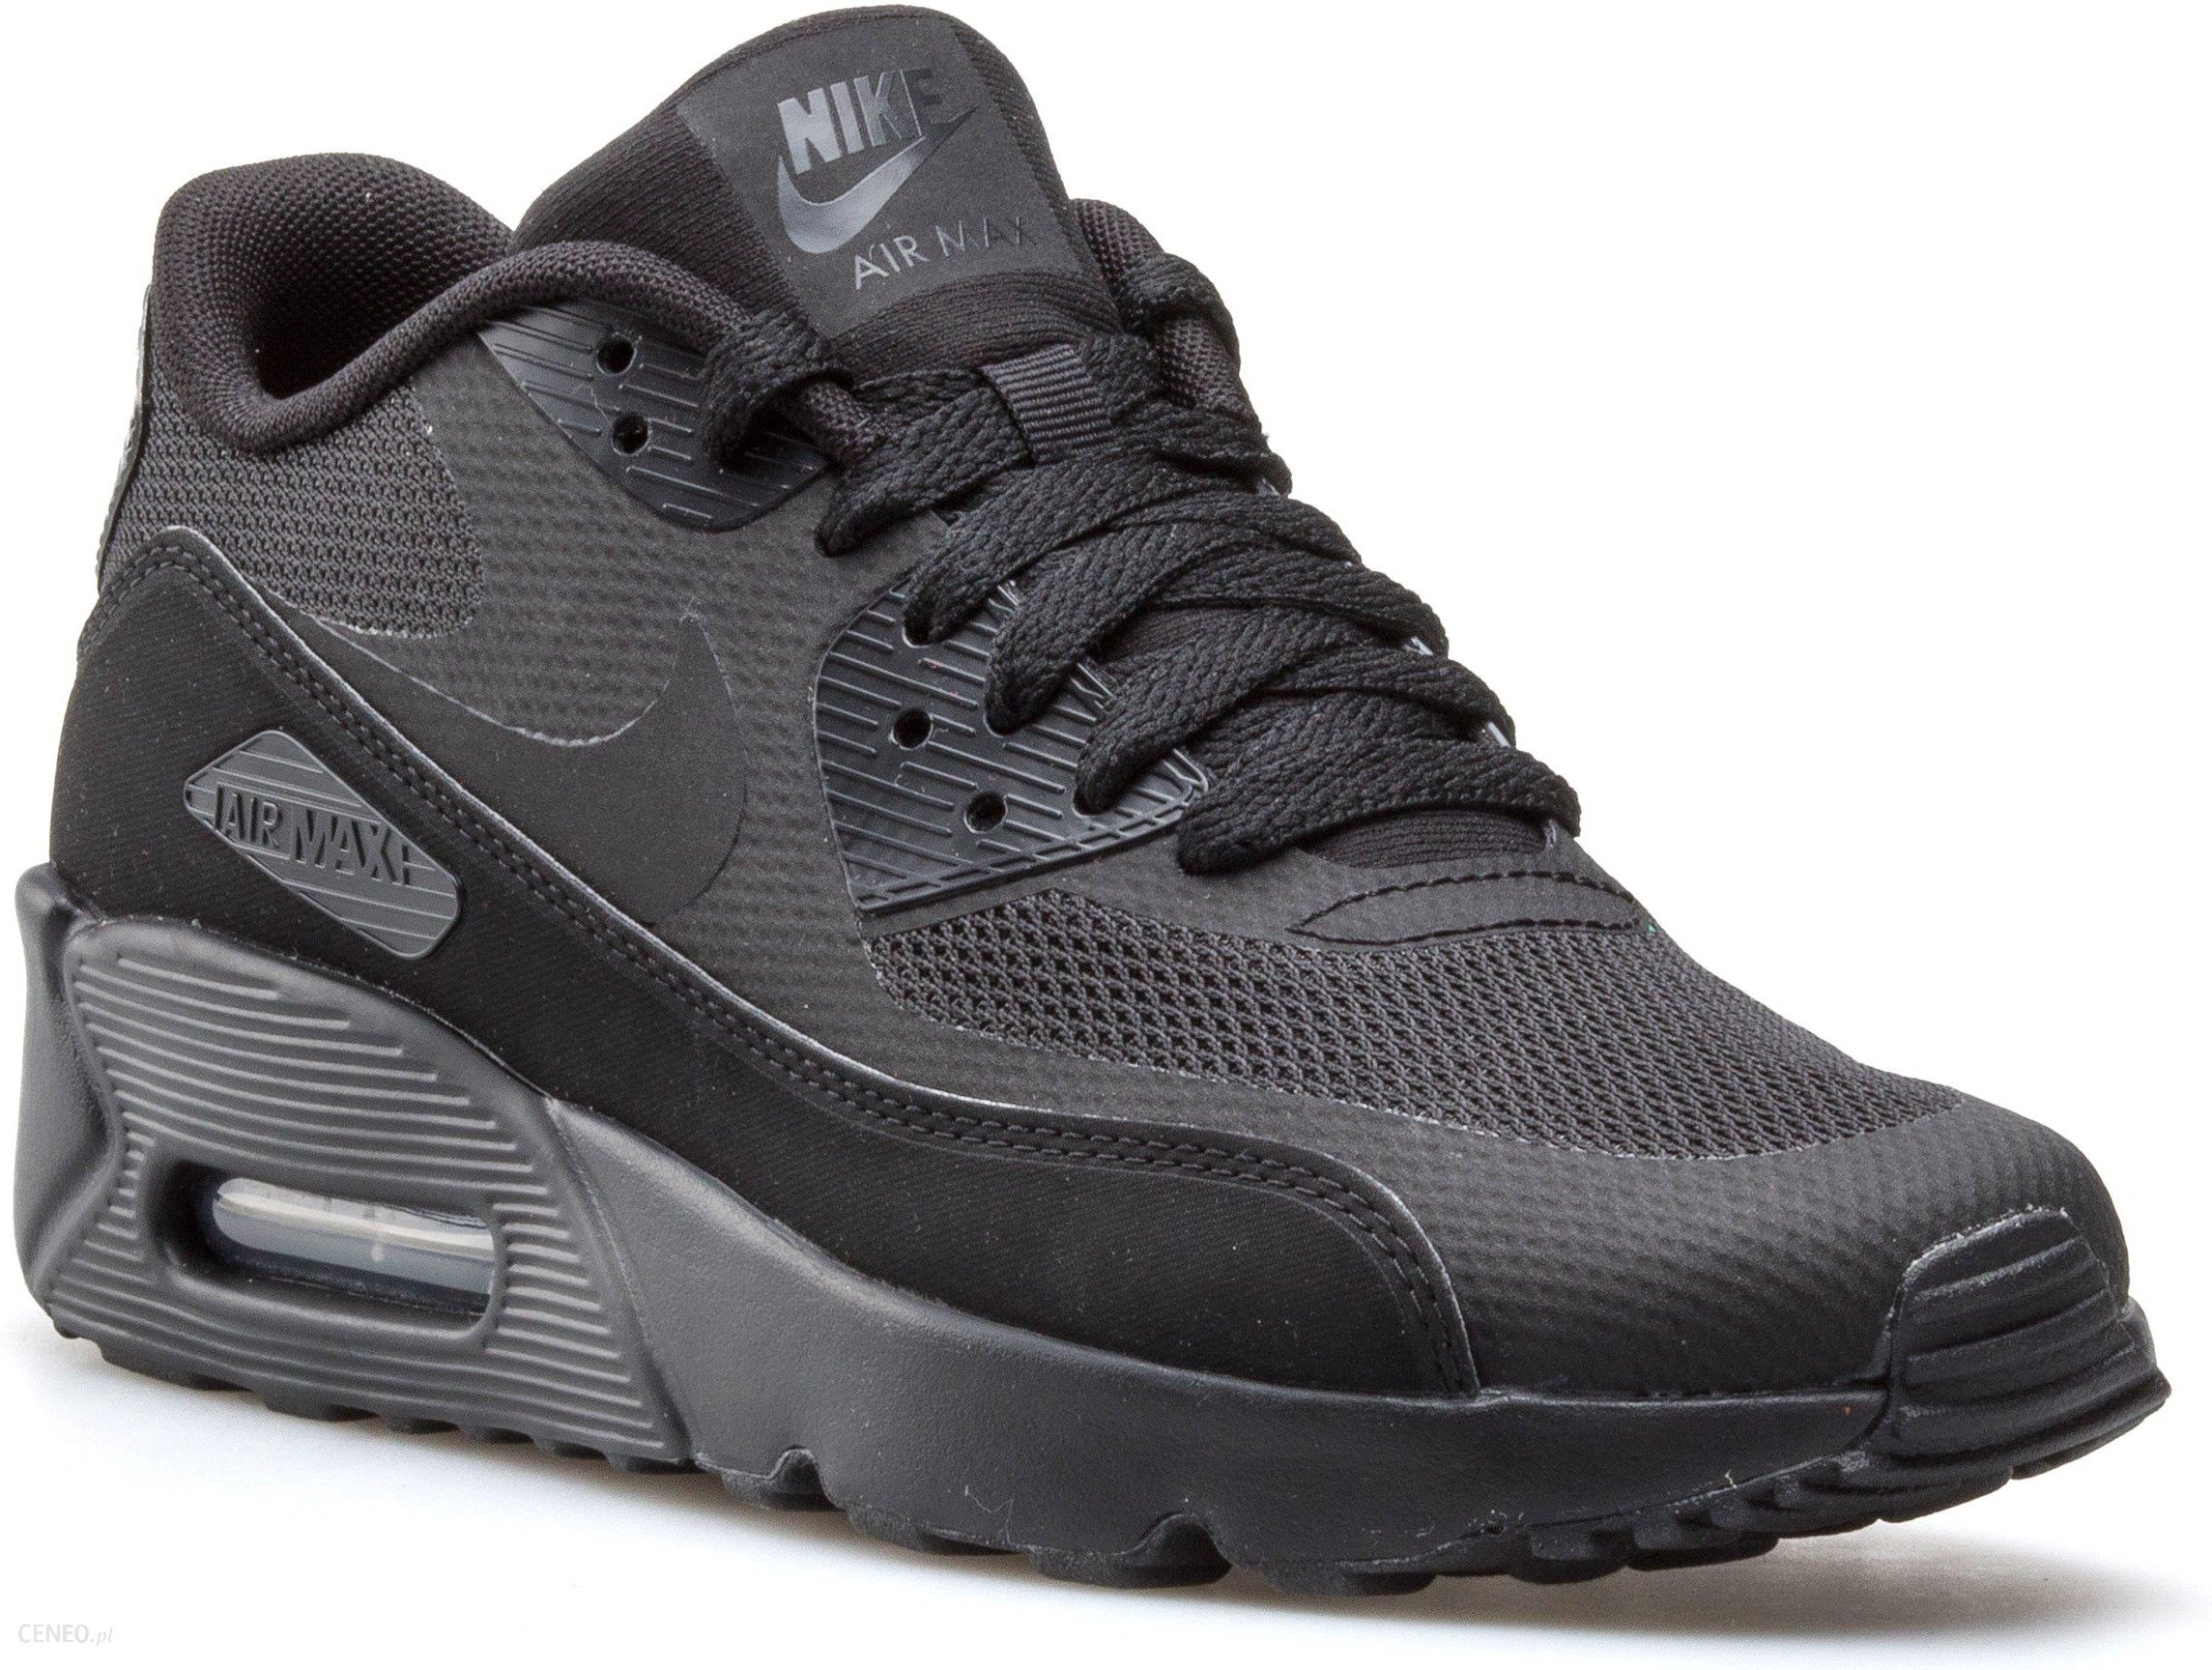 cheap for discount 20c18 94d12 38 8cd3b 12a45 cheapest buty nike air max 90 ultra 2.0 869950 001 r.